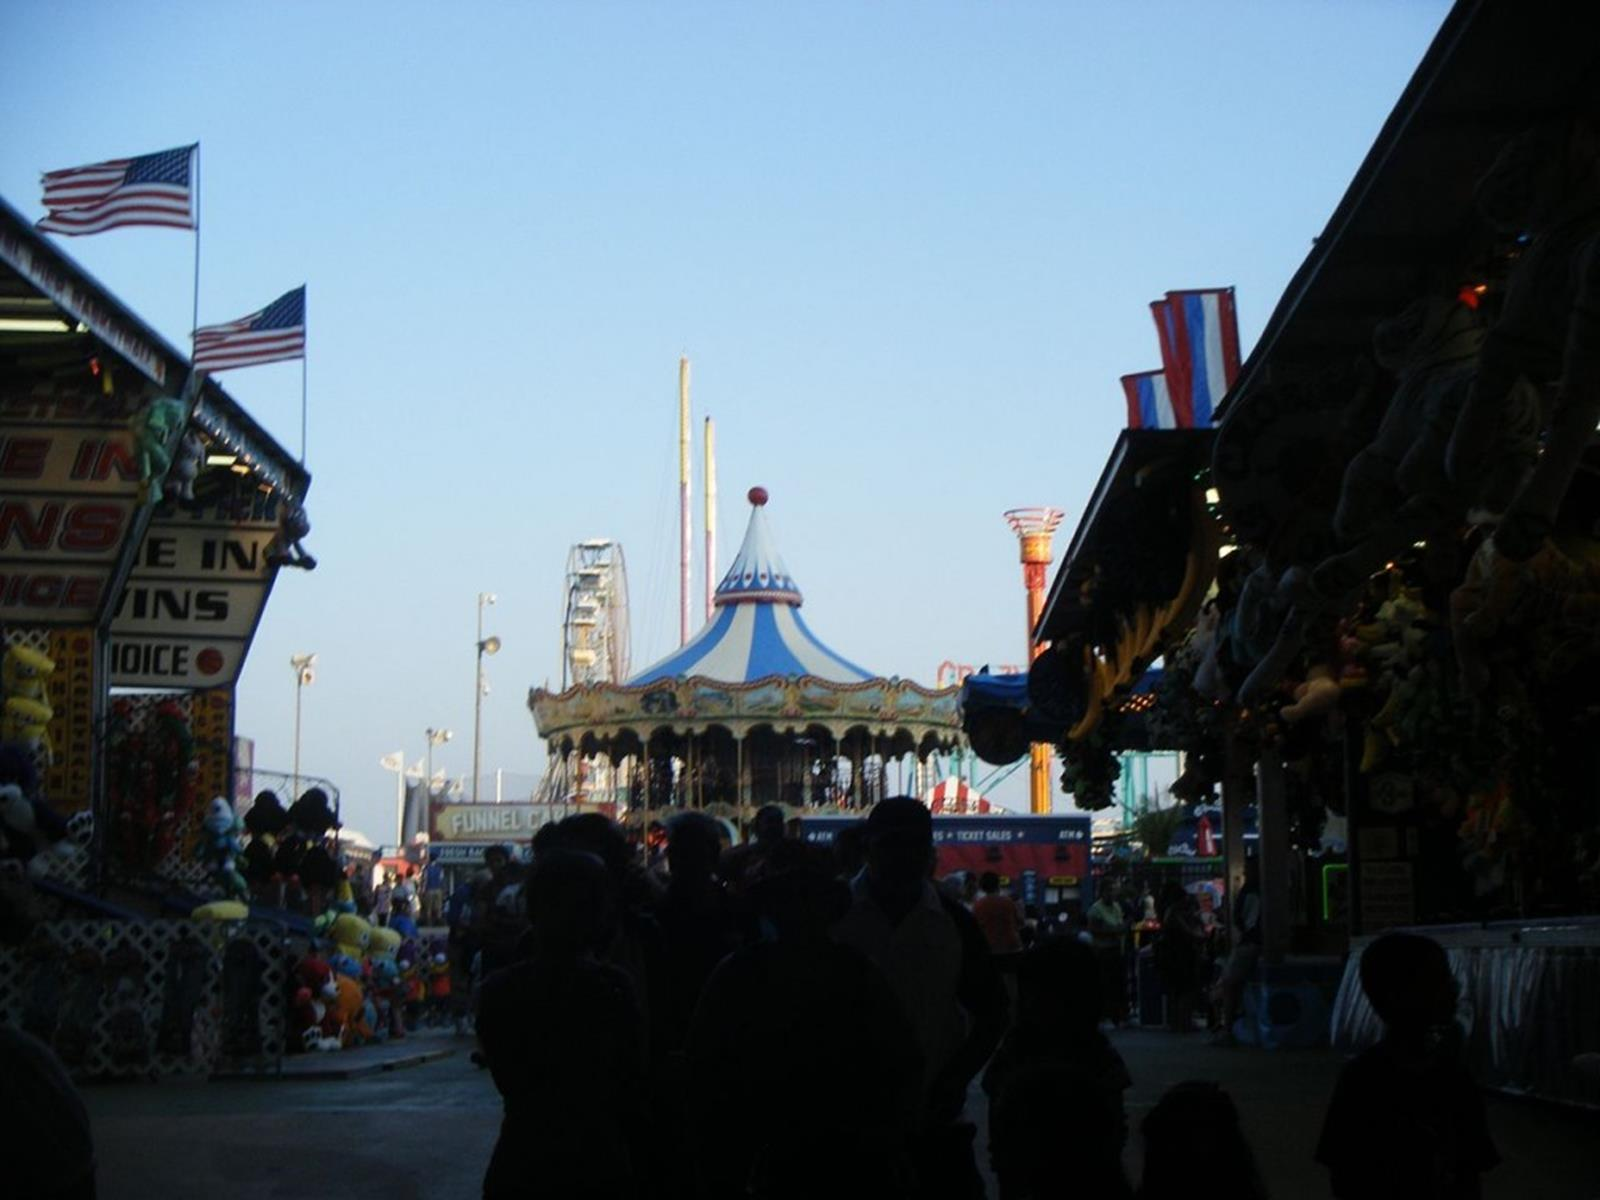 Steel Pier From the Entrance